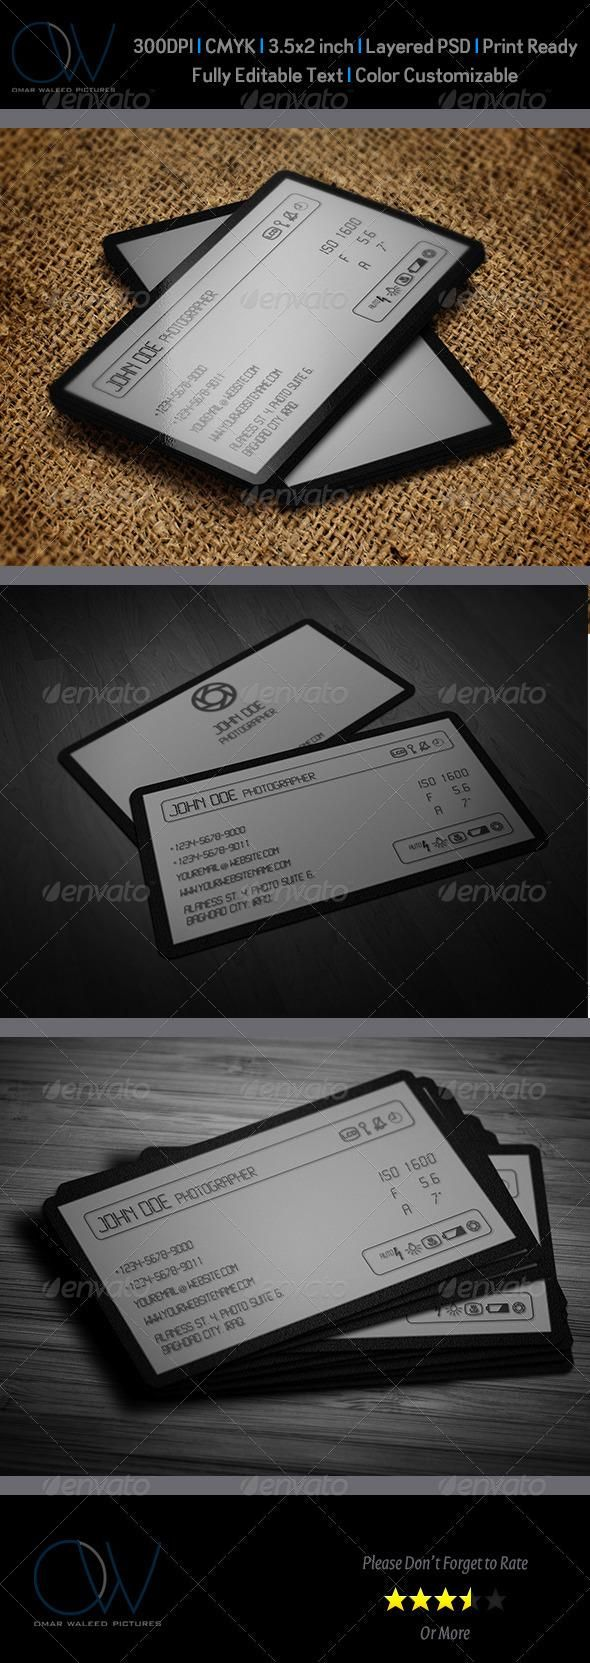 Camera lcd business card pinterest business cards business and camera lcd business card colourmoves